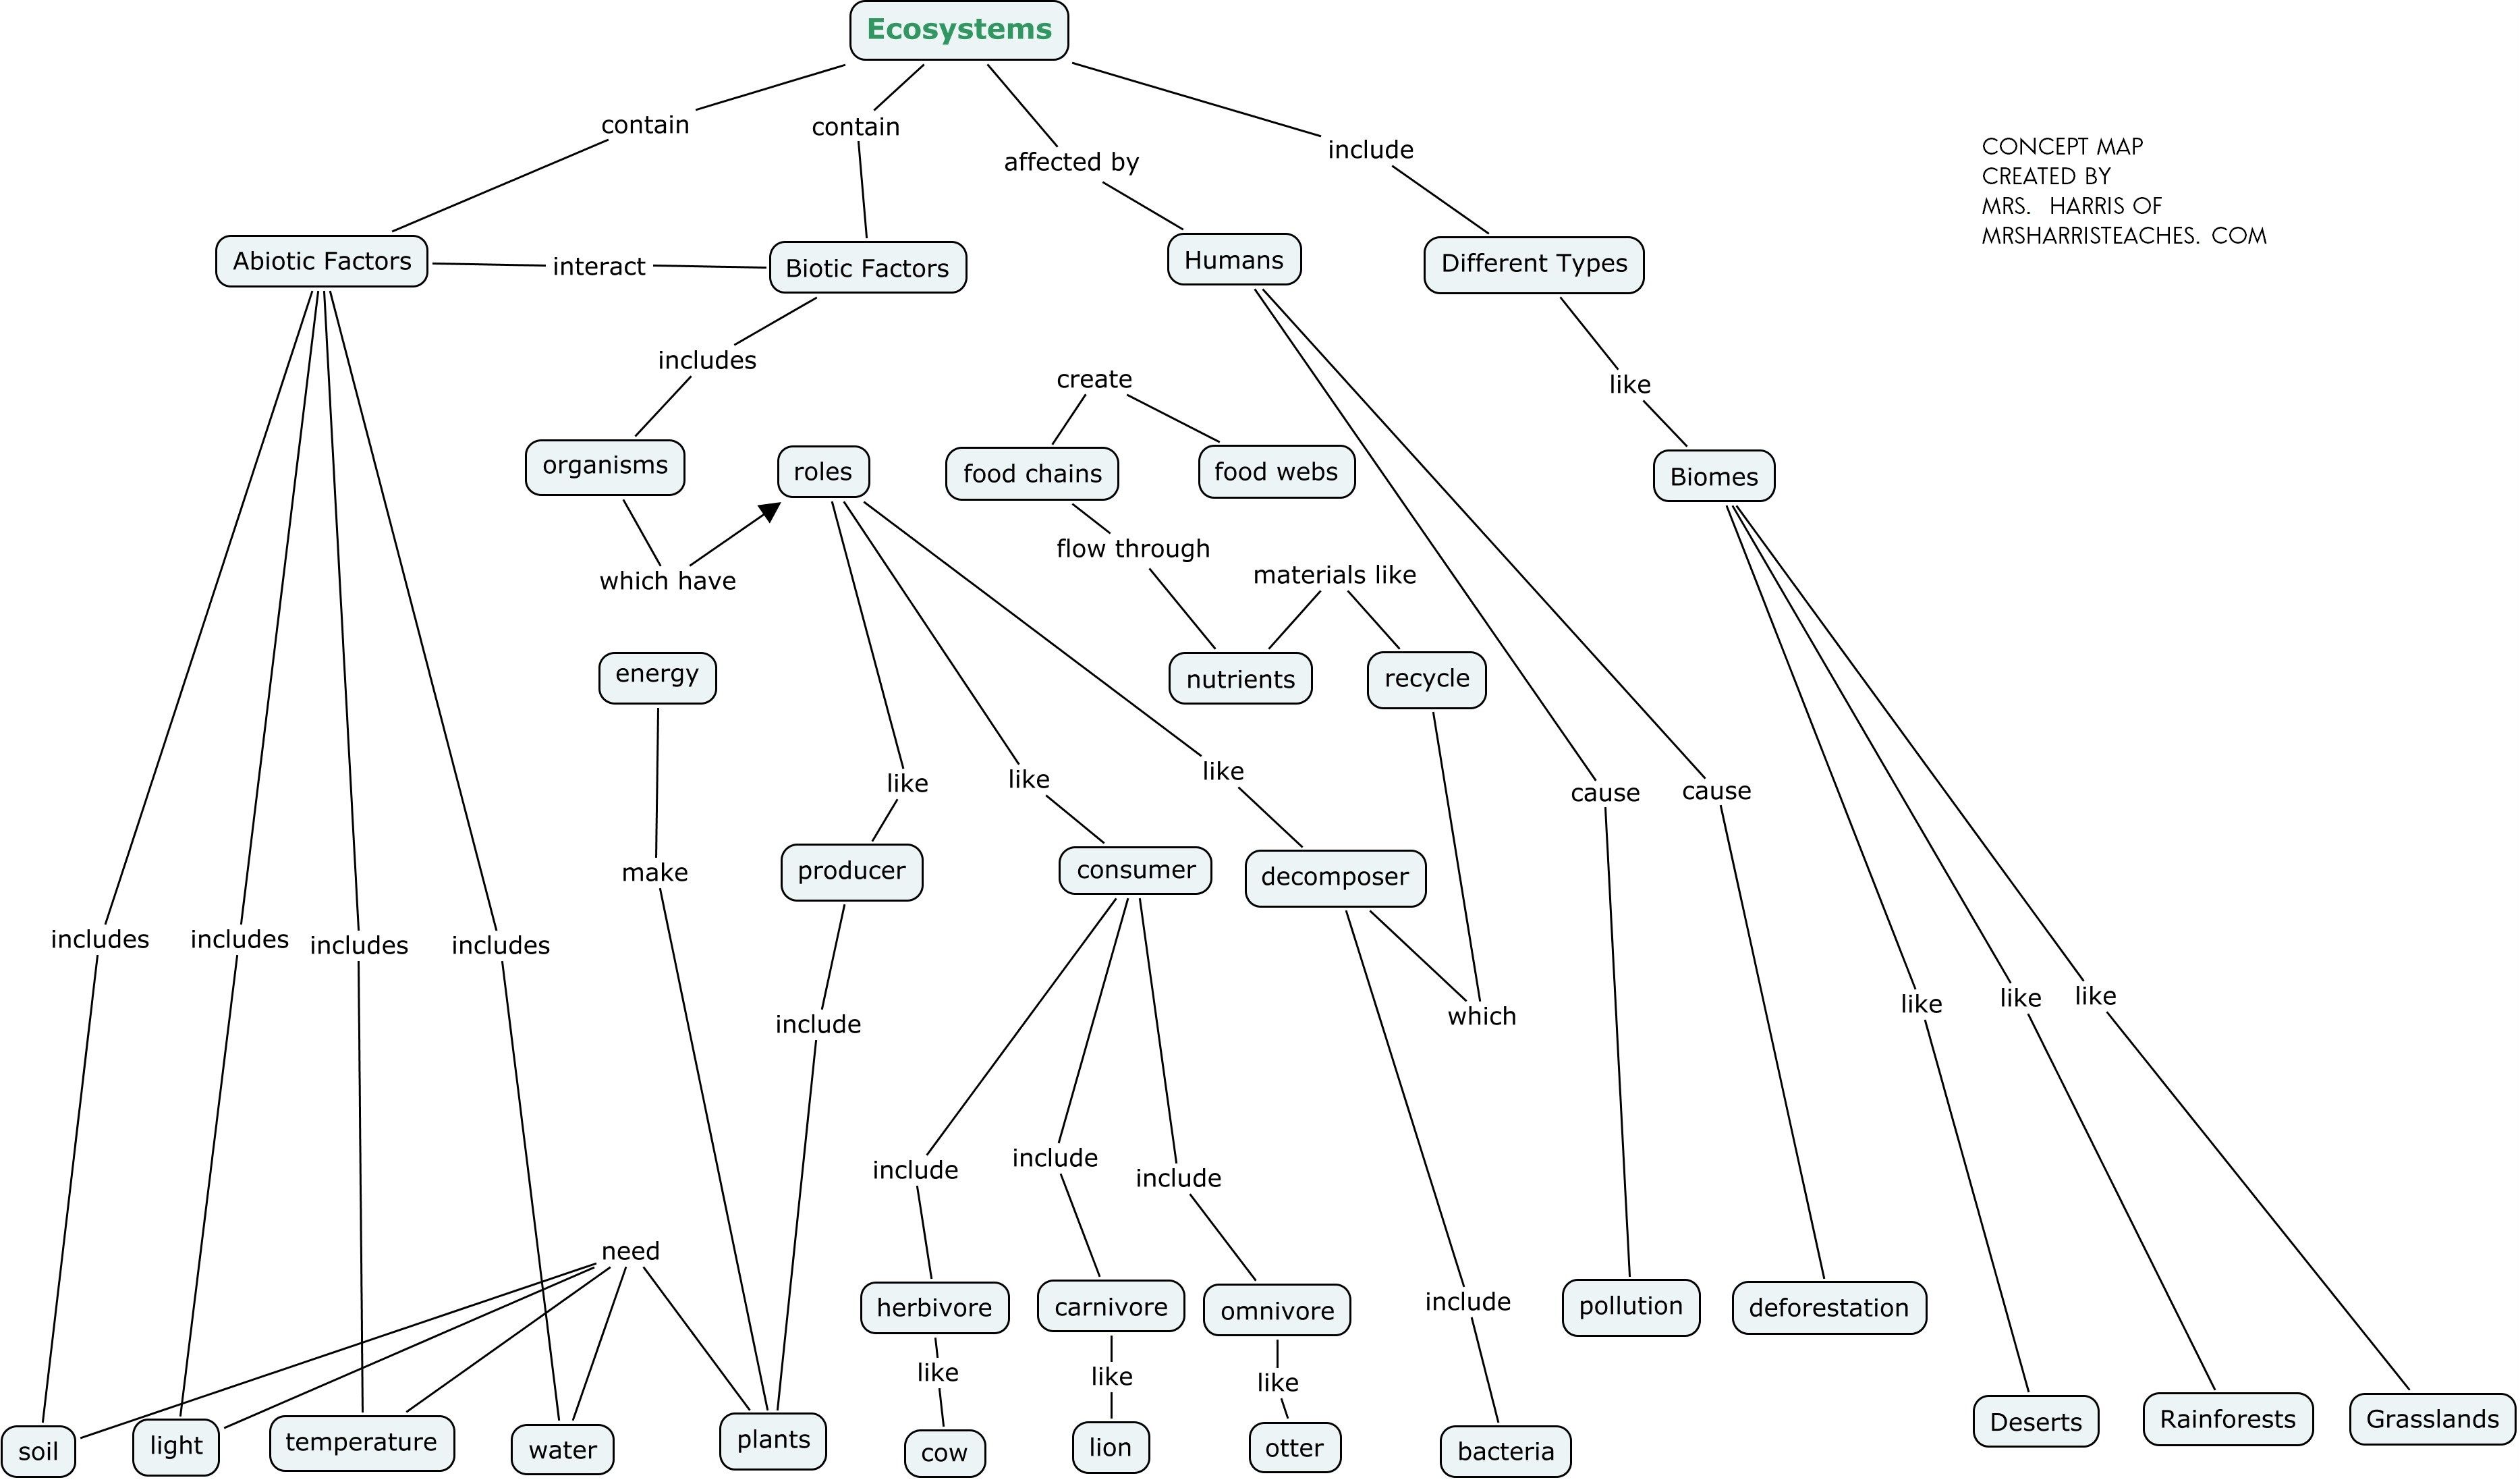 Use This Concept Map To Create A Summary Of The Concept Of Ecosystems